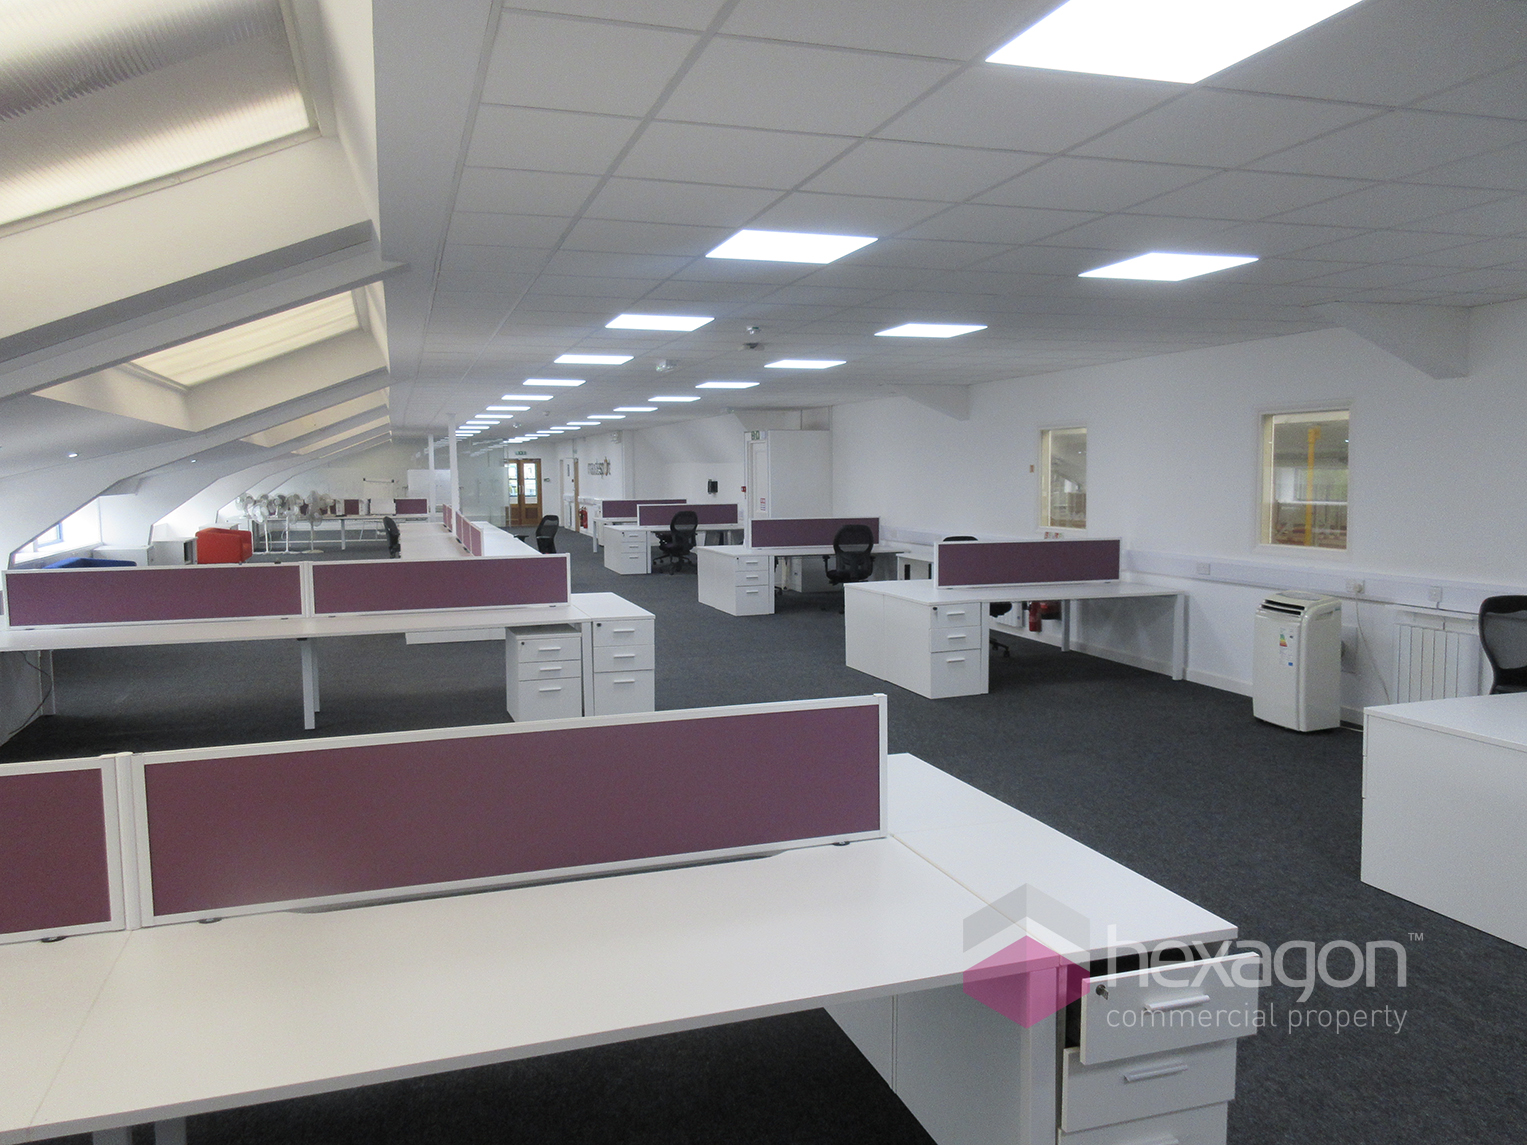 0 bed Office for rent in Walsall. From Hexagon Commercial Property